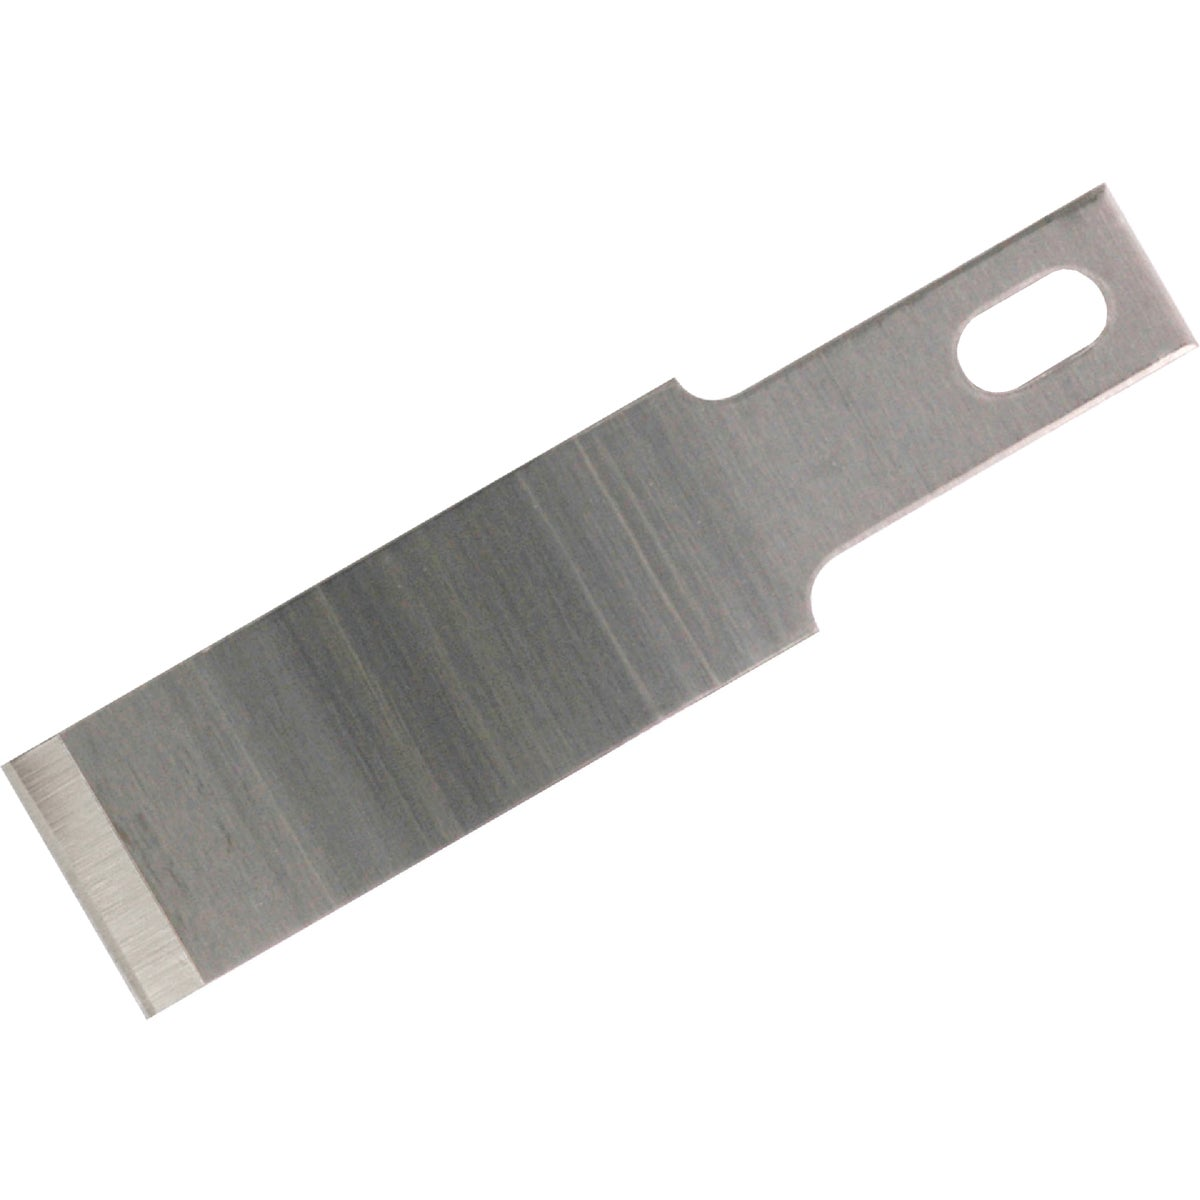 5/CARD #17 HOBBY BLADE - TE01-173 by Techni Edge Mfg Corp